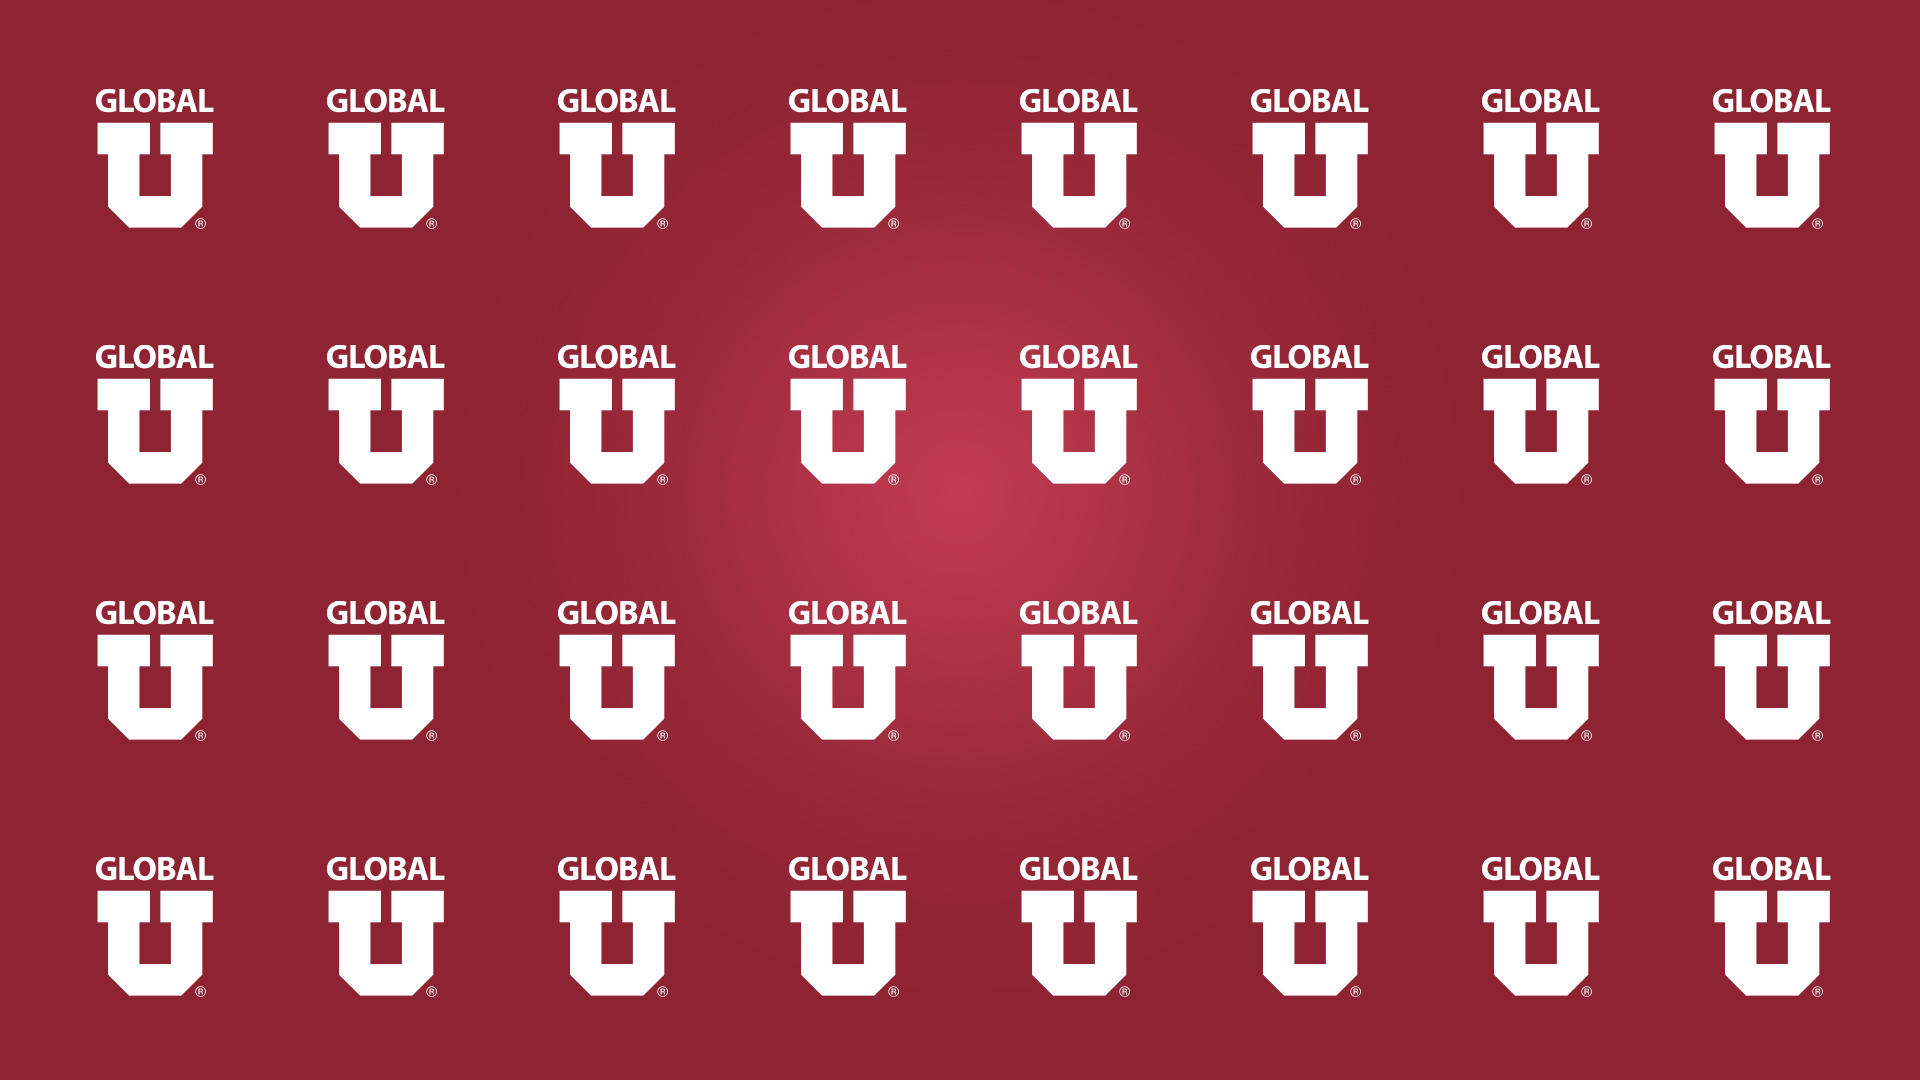 Global U Logo BACKGROUNDS